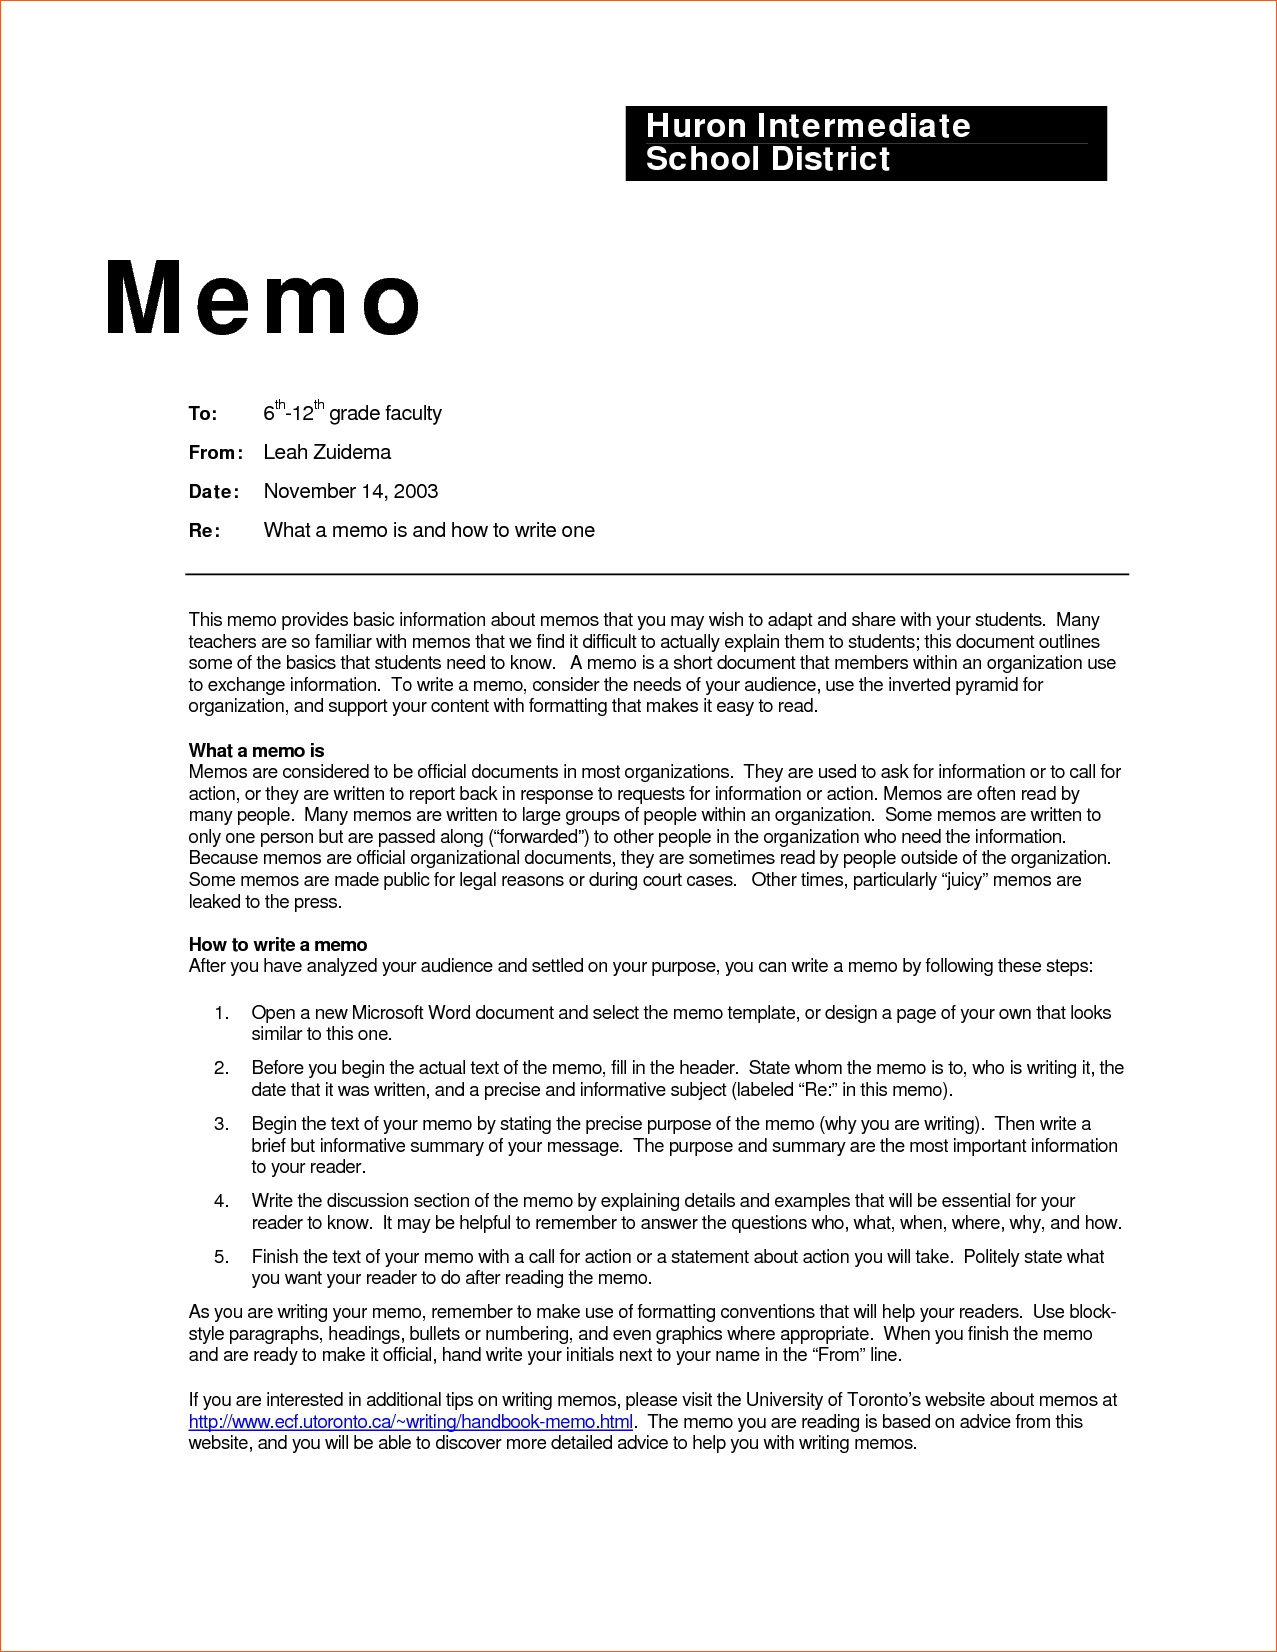 Business Memo Examples Inter Office Sample Wednesday May Template regarding Memorandum Format With Headings 23005